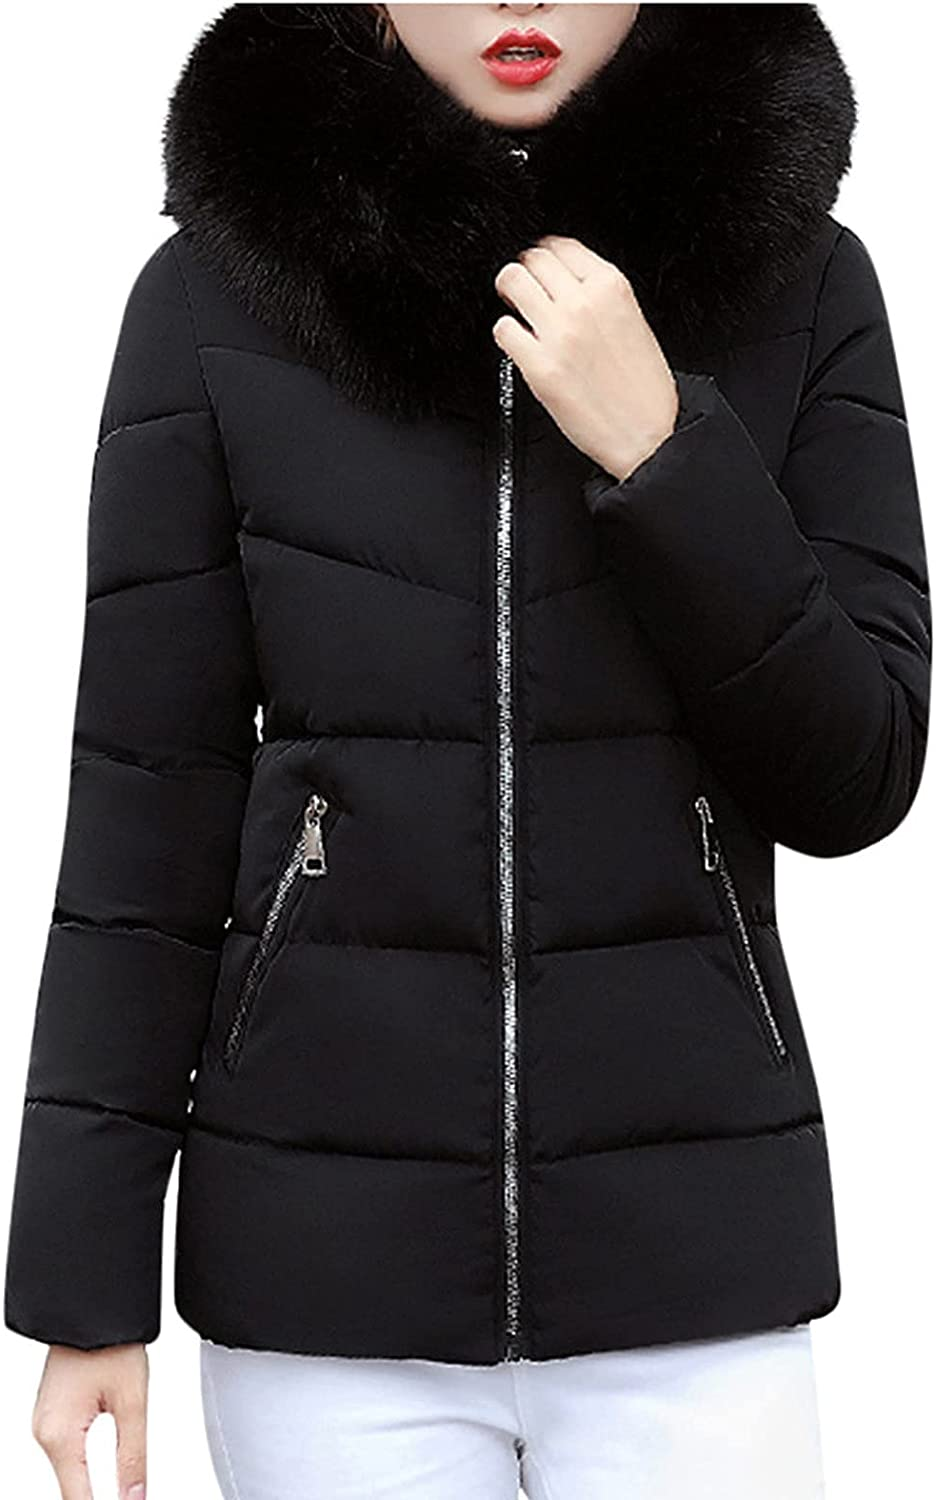 Women's Lightweight Zipper Coats Thicken Down Puffer Jacket Quilted With Pocket Winter Pure Color Overcoats